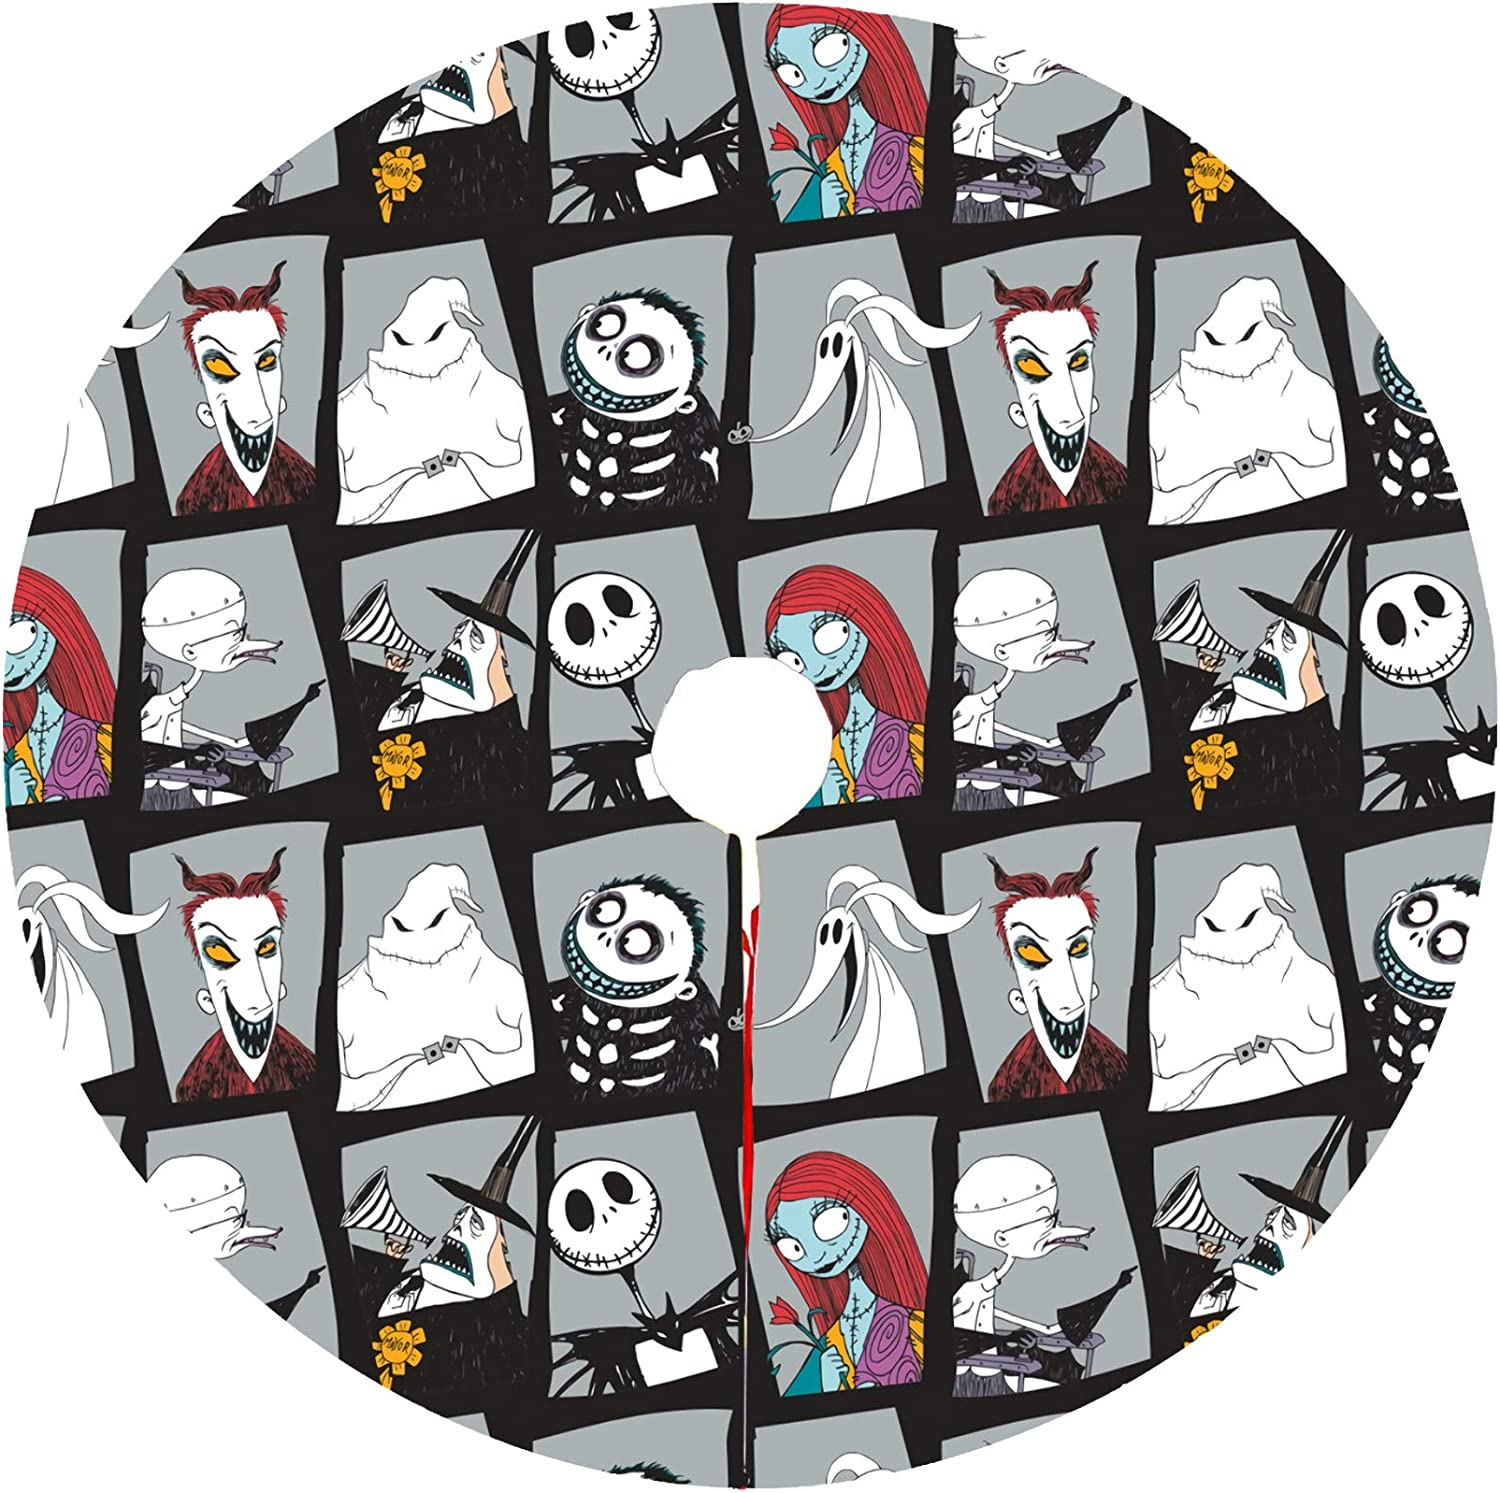 Nightmare Before Christmas Tree Skirt Kits Mat Decorations Large Trees Group Soft And Light Easy To Put In Home Office For Xmas Halloween Holiday Party Decoration (Nightmare Christmas4, 30in)